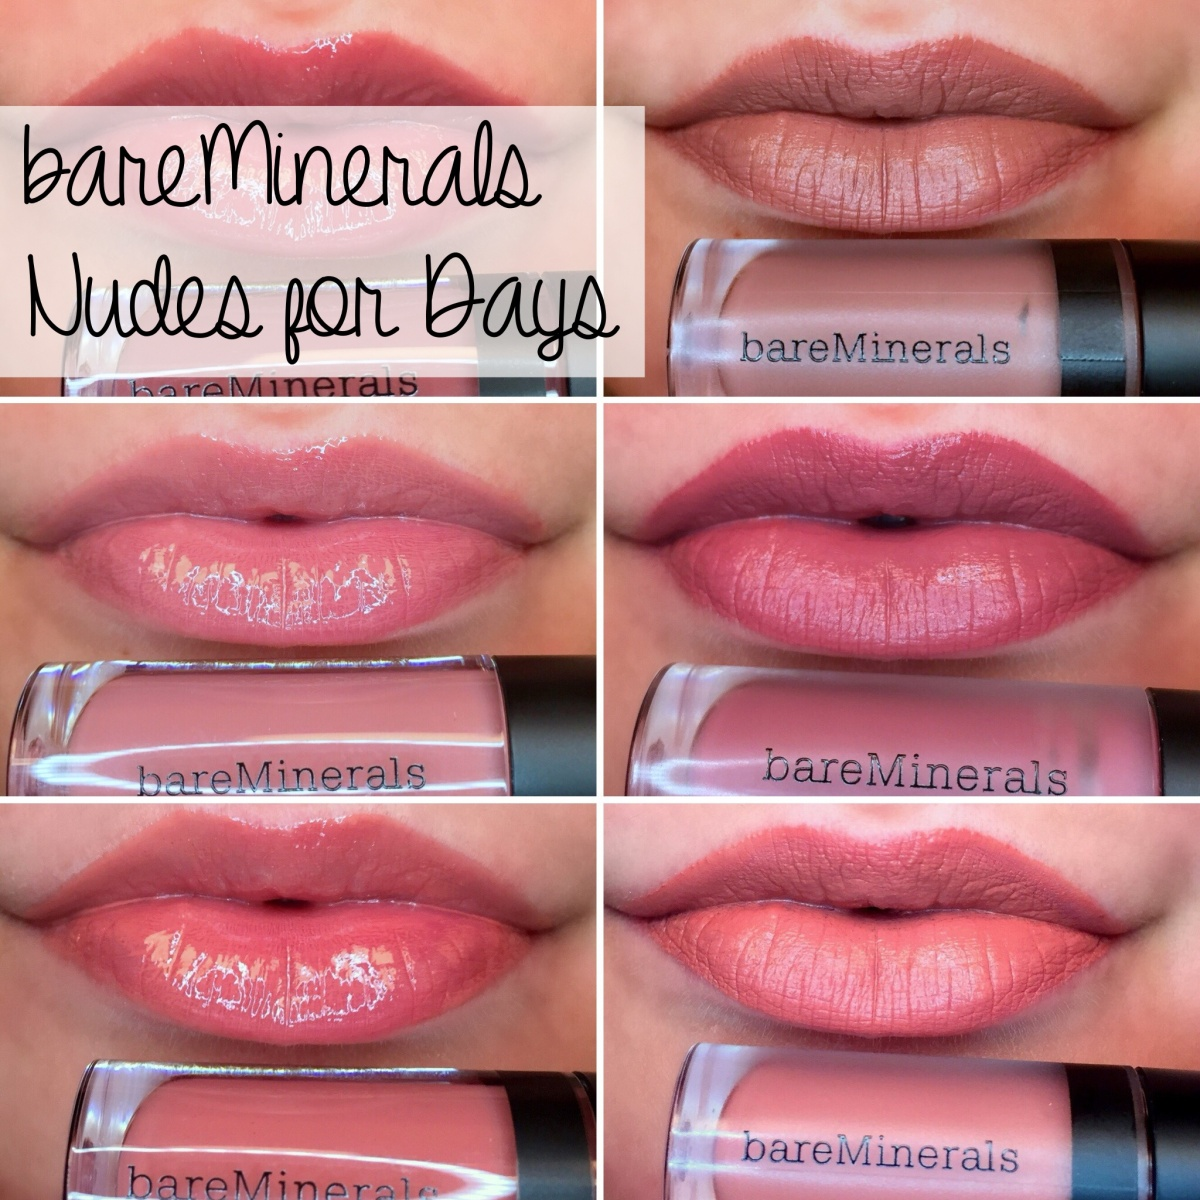 bareMinerals Nudes for Days: GEN NUDE Matte Liquid Lipcolor and Buttercream Lipgloss Reviews